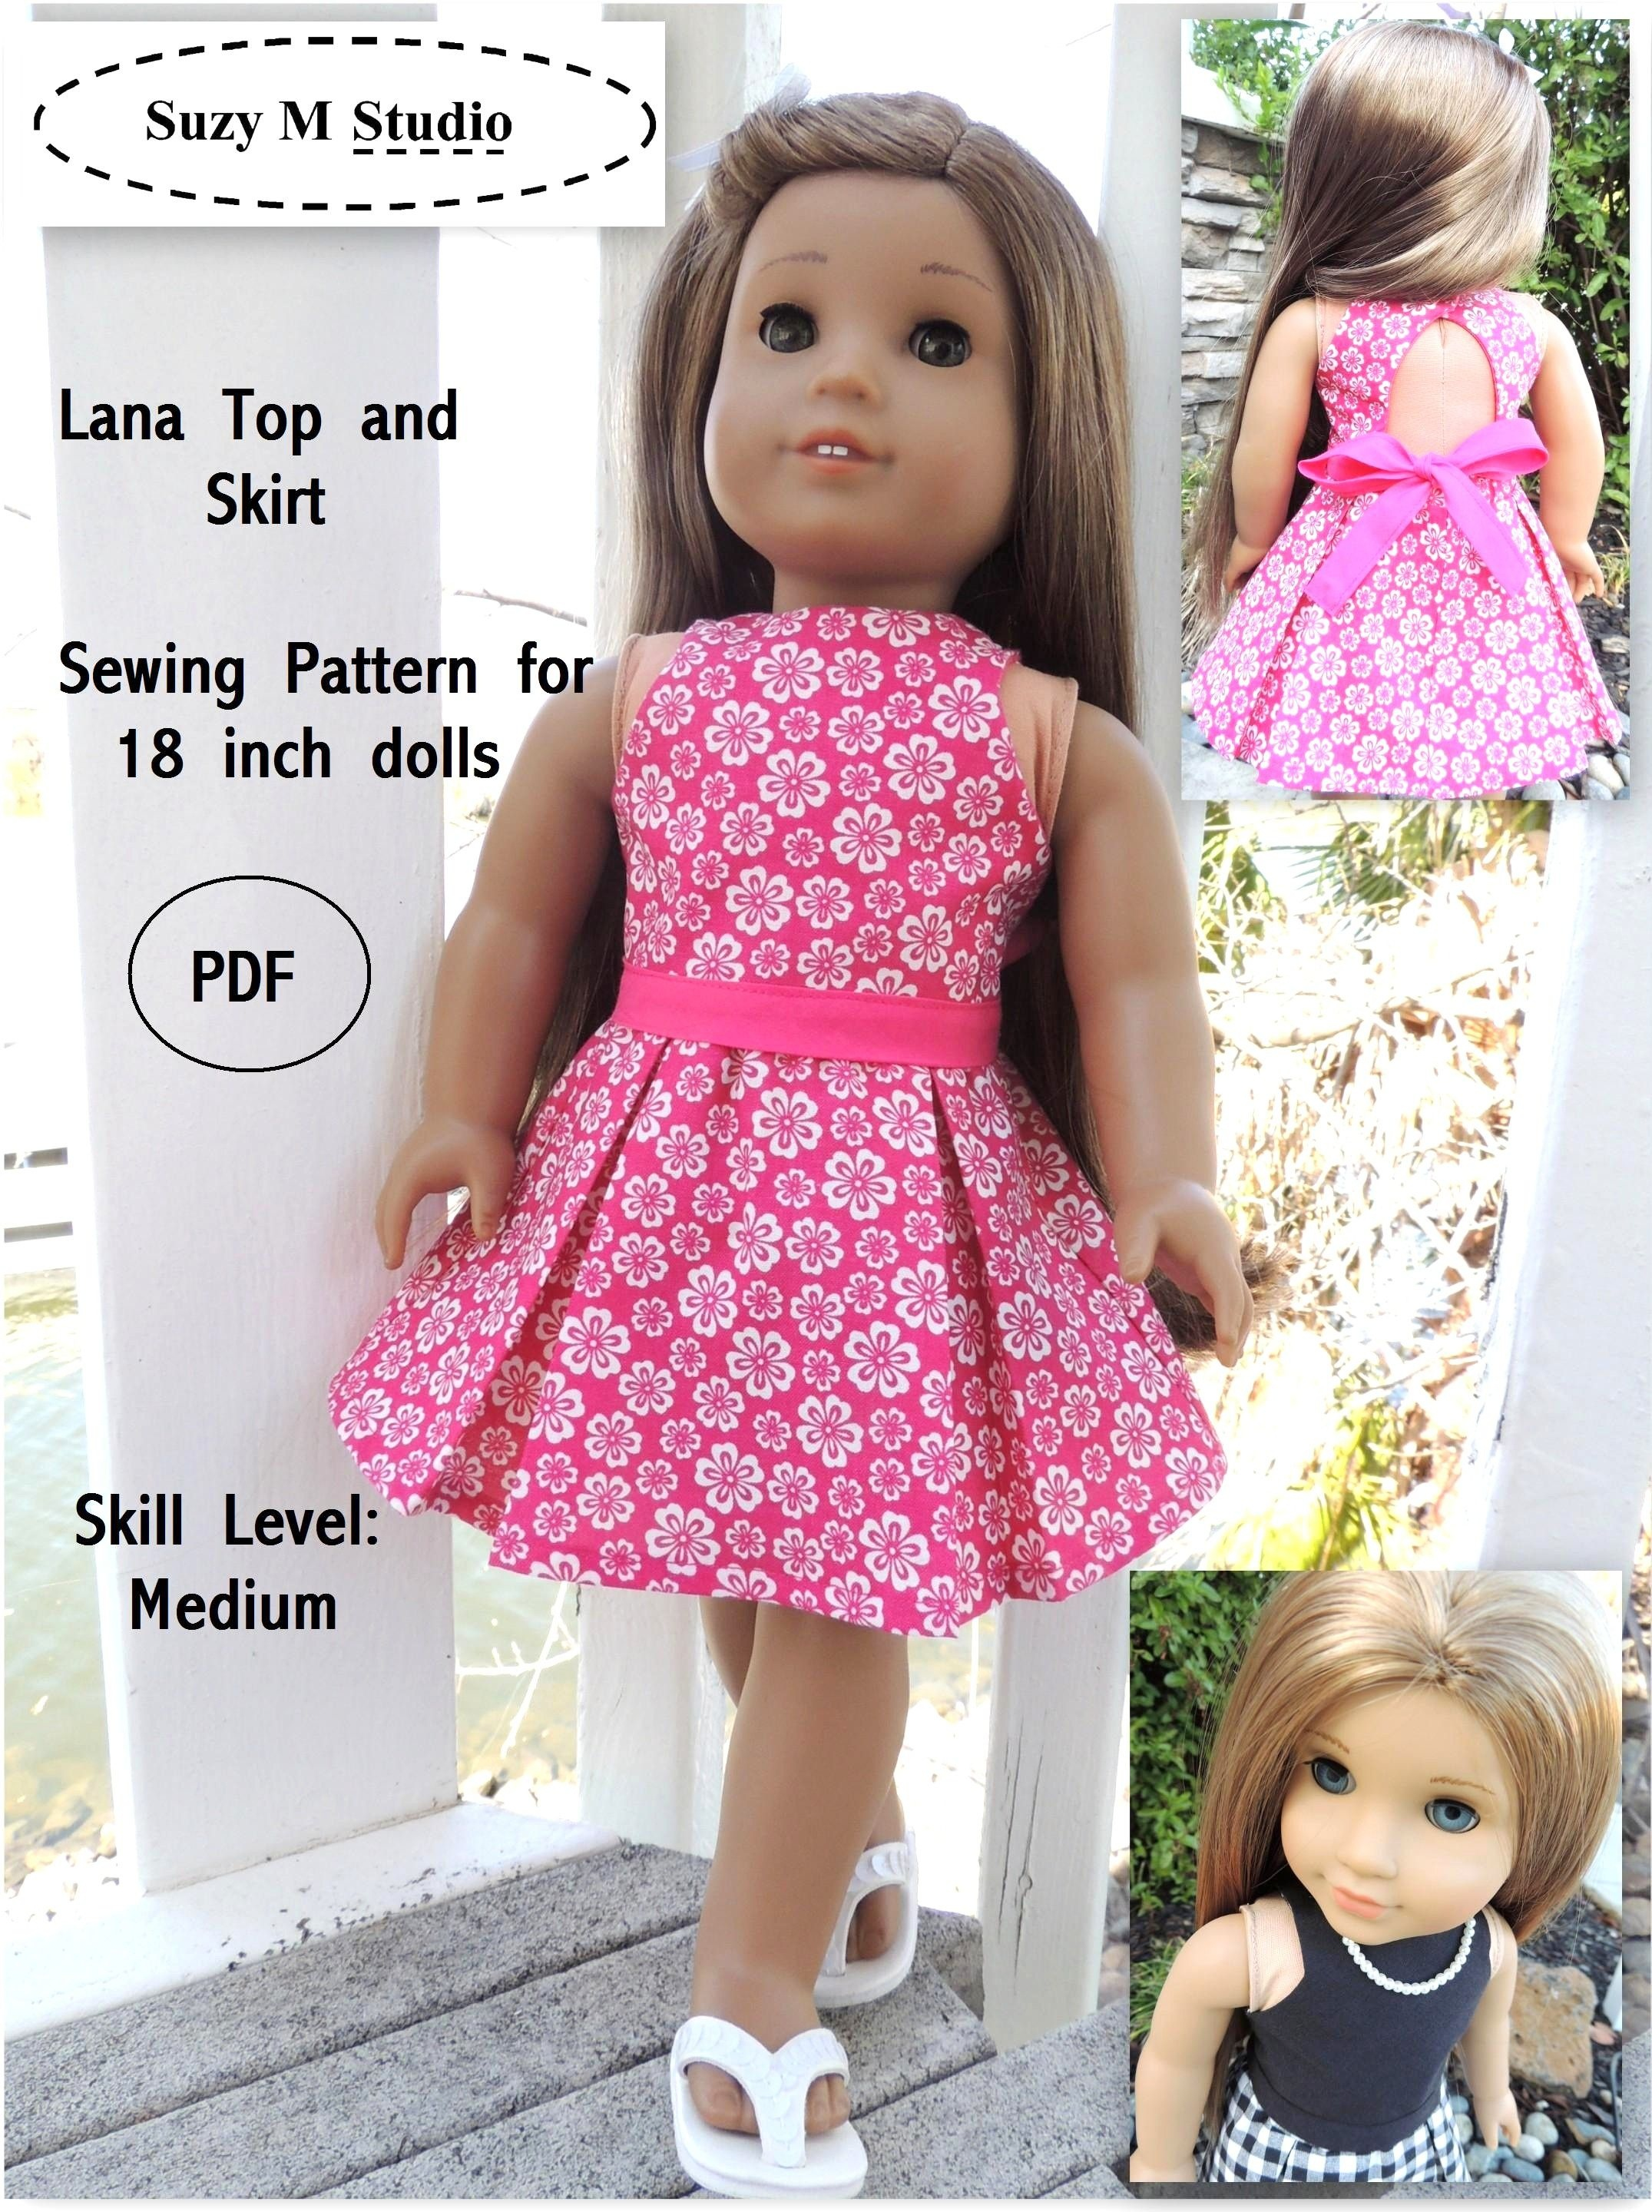 Free Tutorial Pdf | Suzymstudio … | Doll Clothes | Girl … - Free Printable Sewing Patterns For 18 Inch Doll Clothes